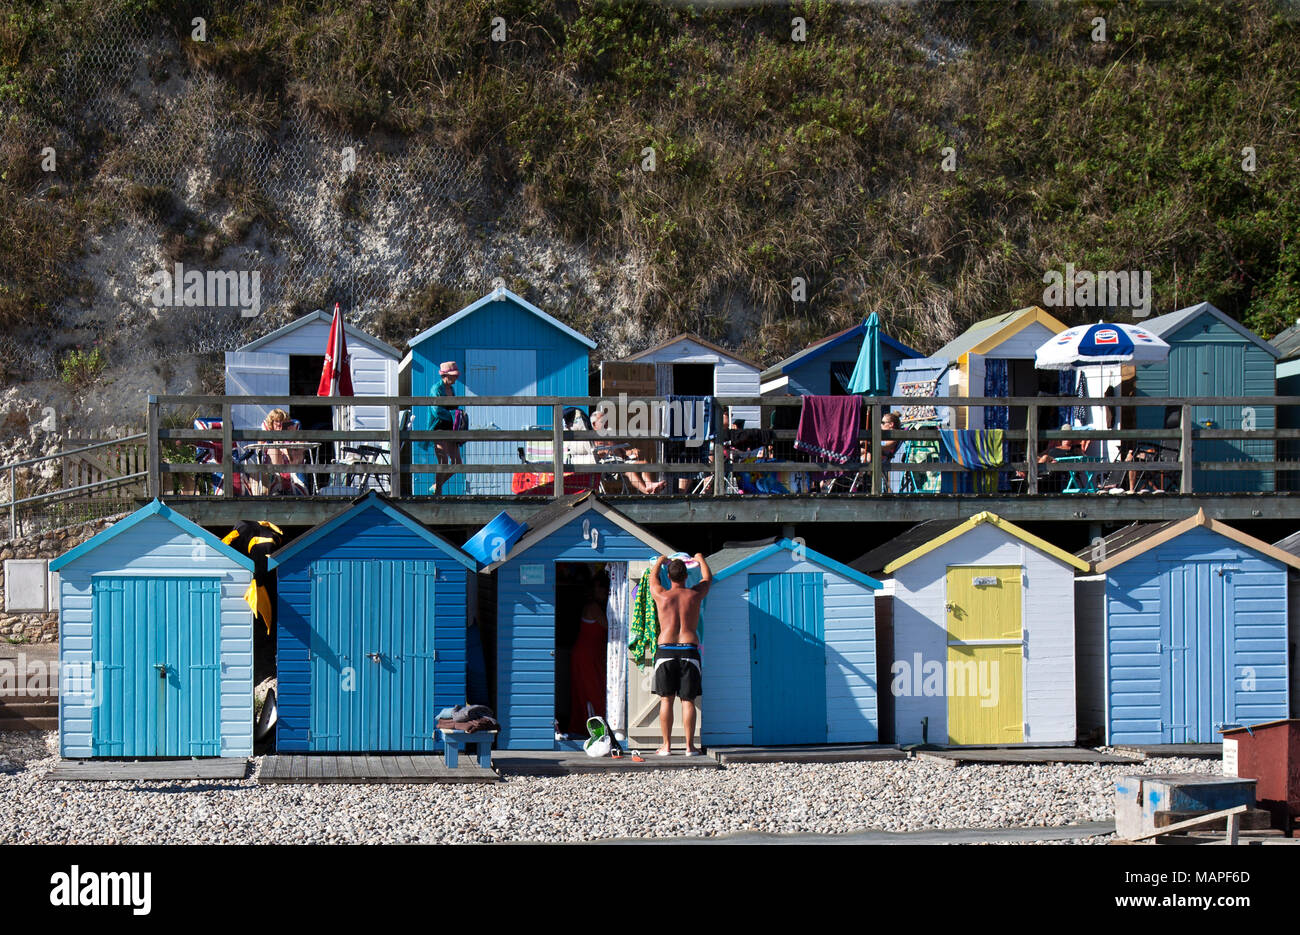 A hallmark of British beaches, colorful beach huts can be owned, rented, or past down through families.  These line the back portion of Beer Beach. - Stock Image